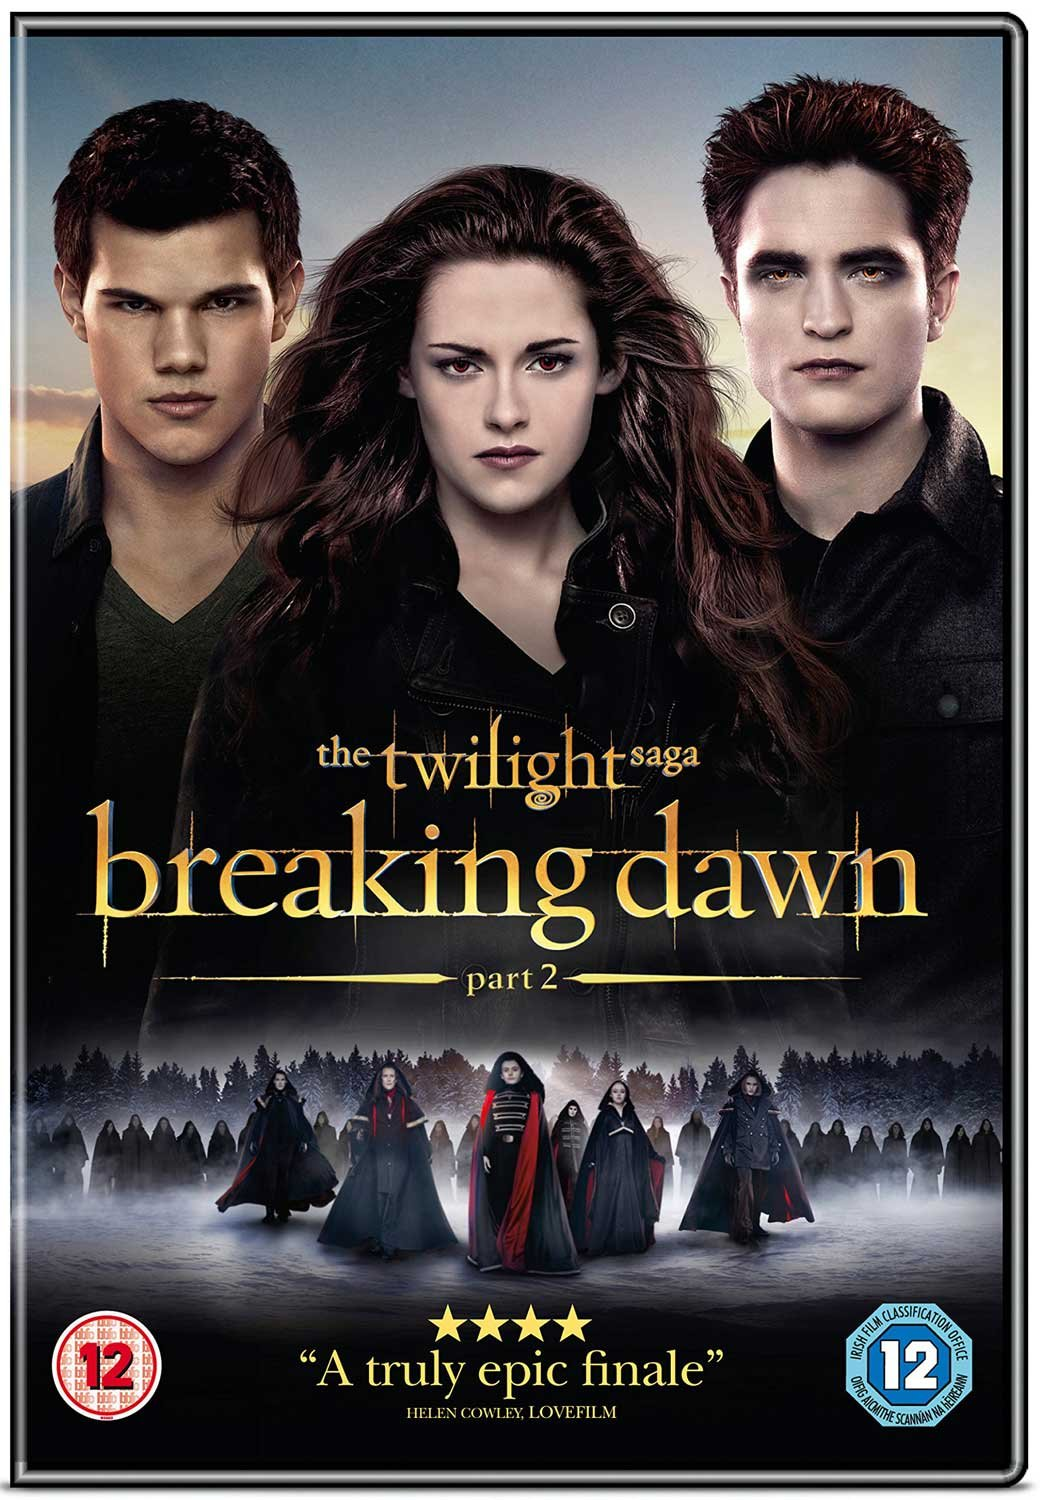 Twilight release date in Perth